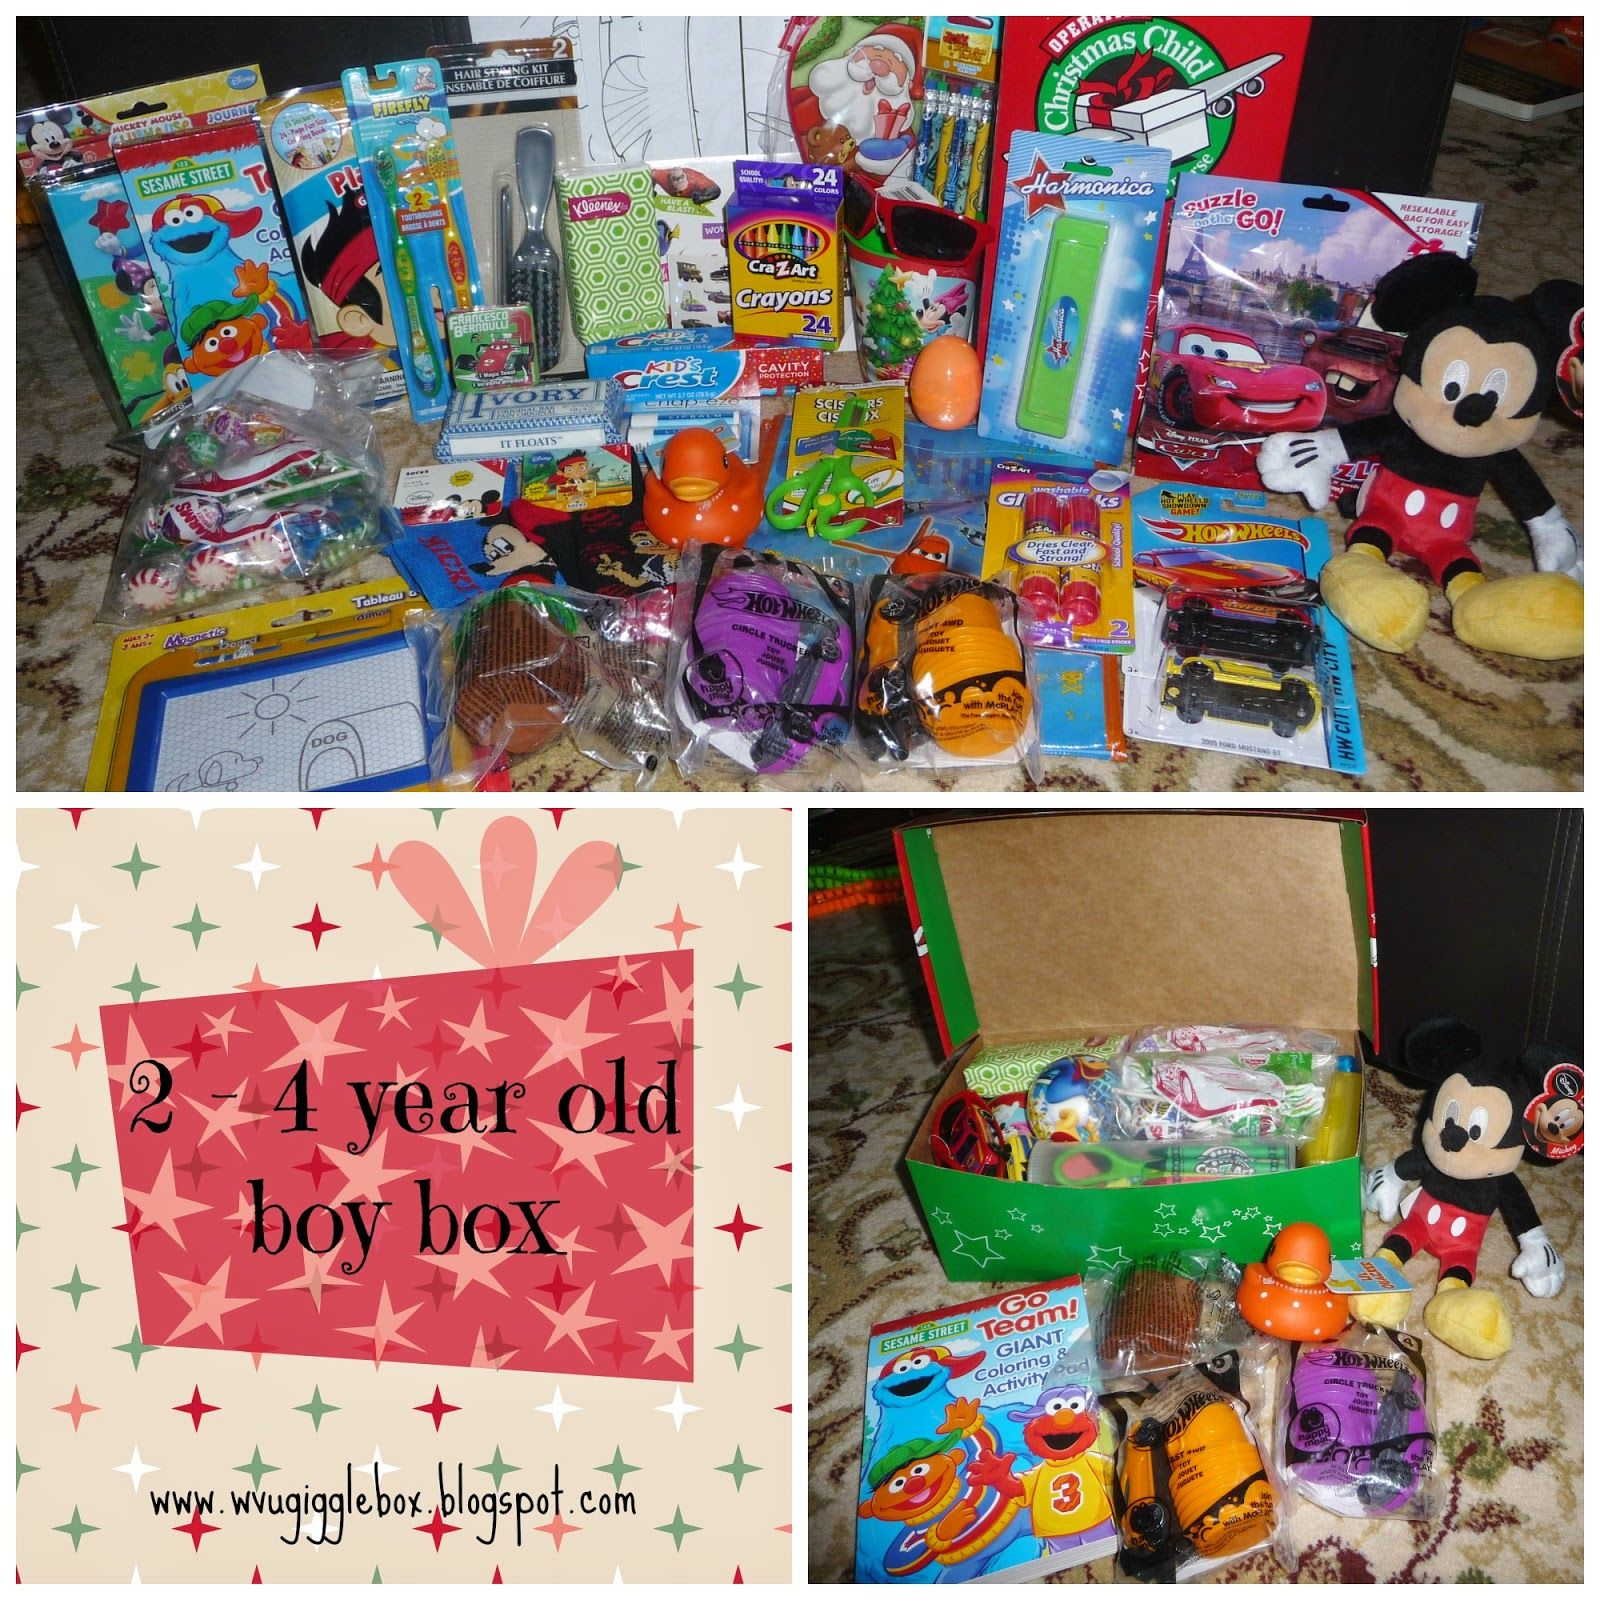 Operation Christmas Child 2014 packing a 2 4 year old boy box